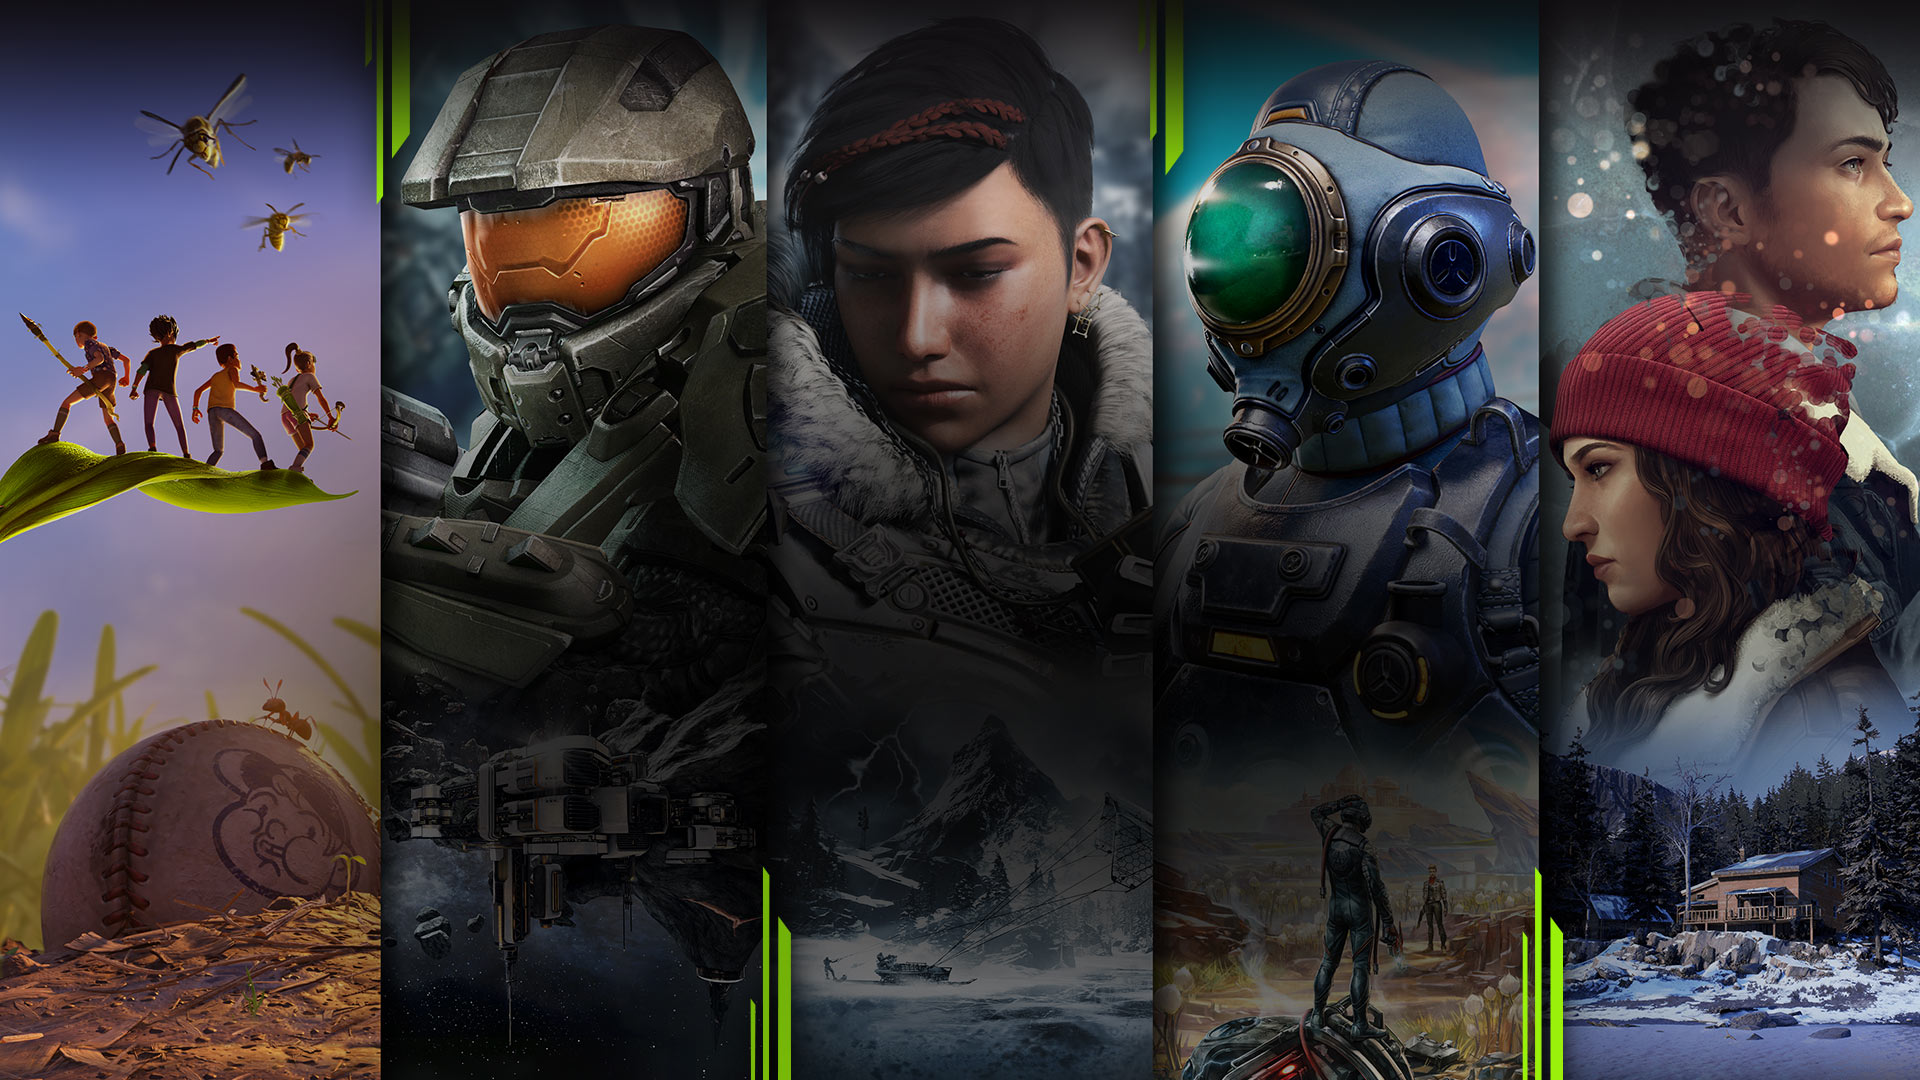 Game art from multiple games available with Xbox Game Pass including Grounded, Halo 4, Gears 5, The Outer Worlds, and Tell Me Why.